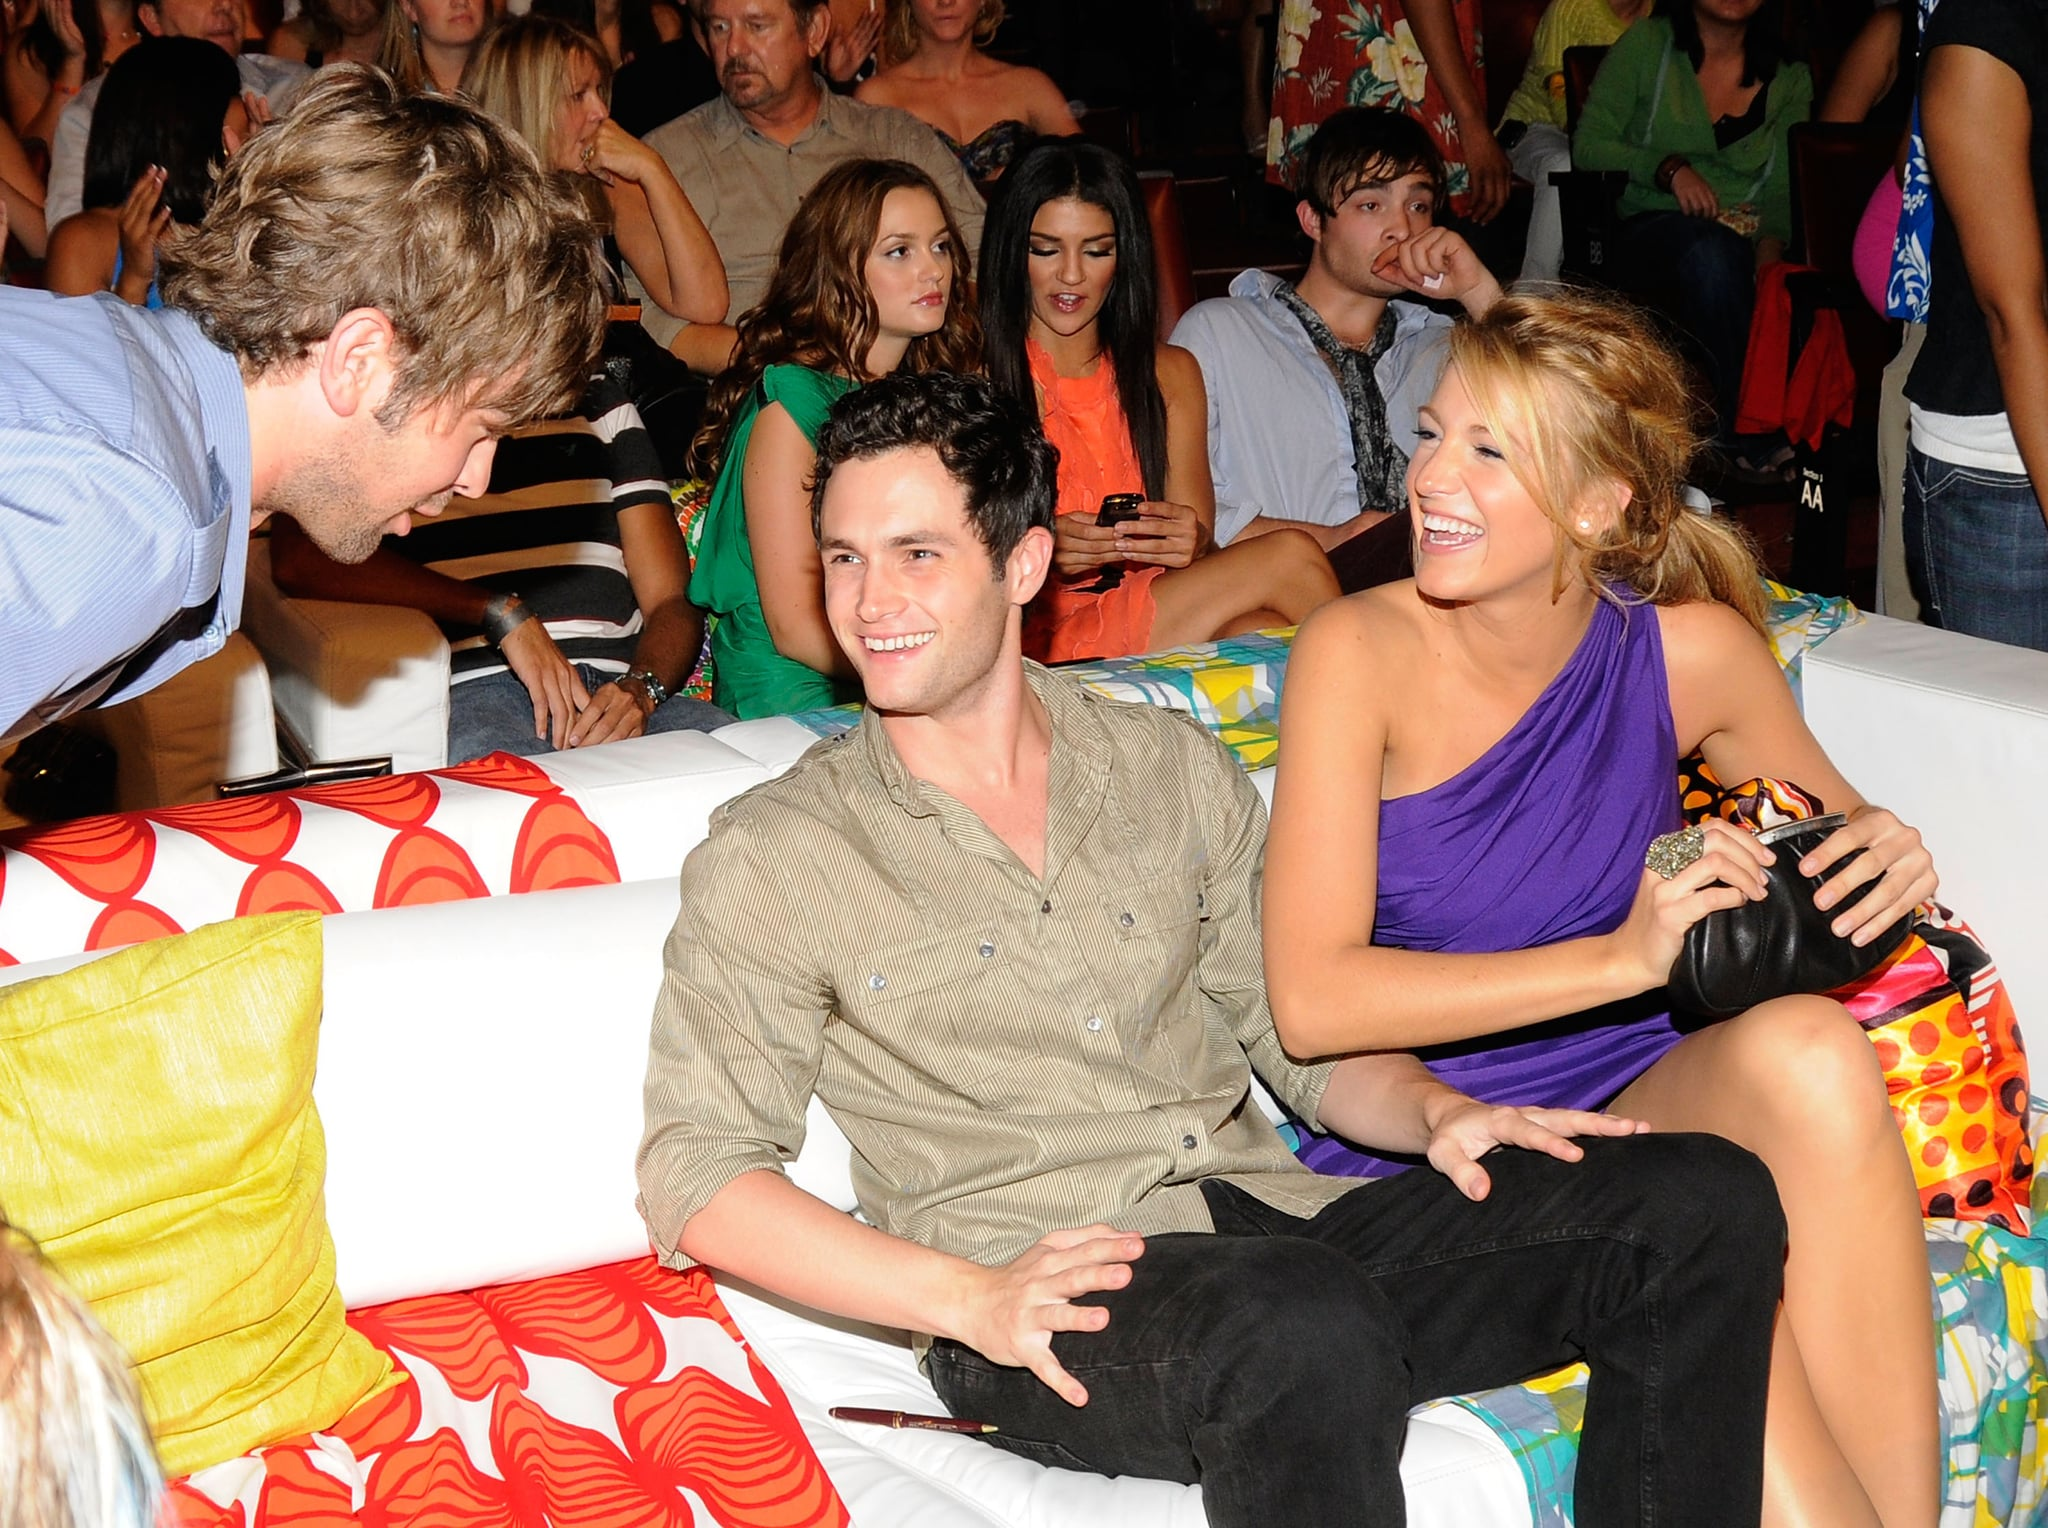 Penn Badgley and Blake Lively cuddled close at the 2008 Teen Choice Awards in LA.